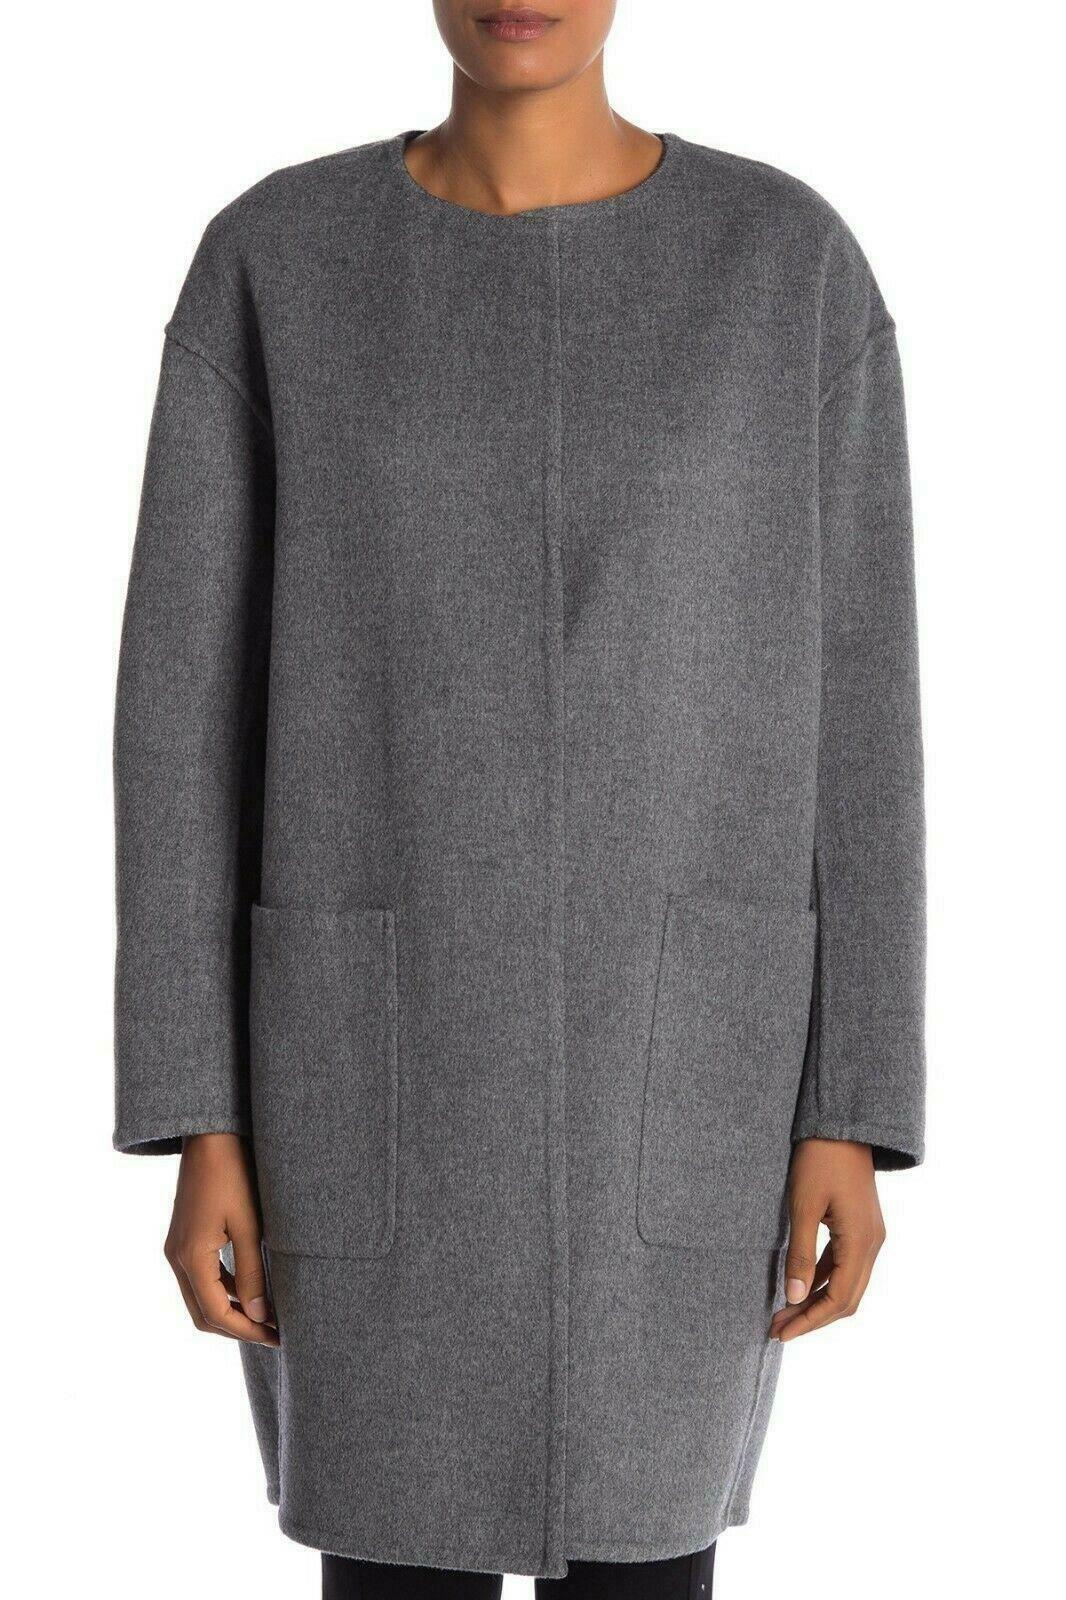 Vince Women's Reversible Coat Double Faced Wool Blend Size Large Grey - $275.99